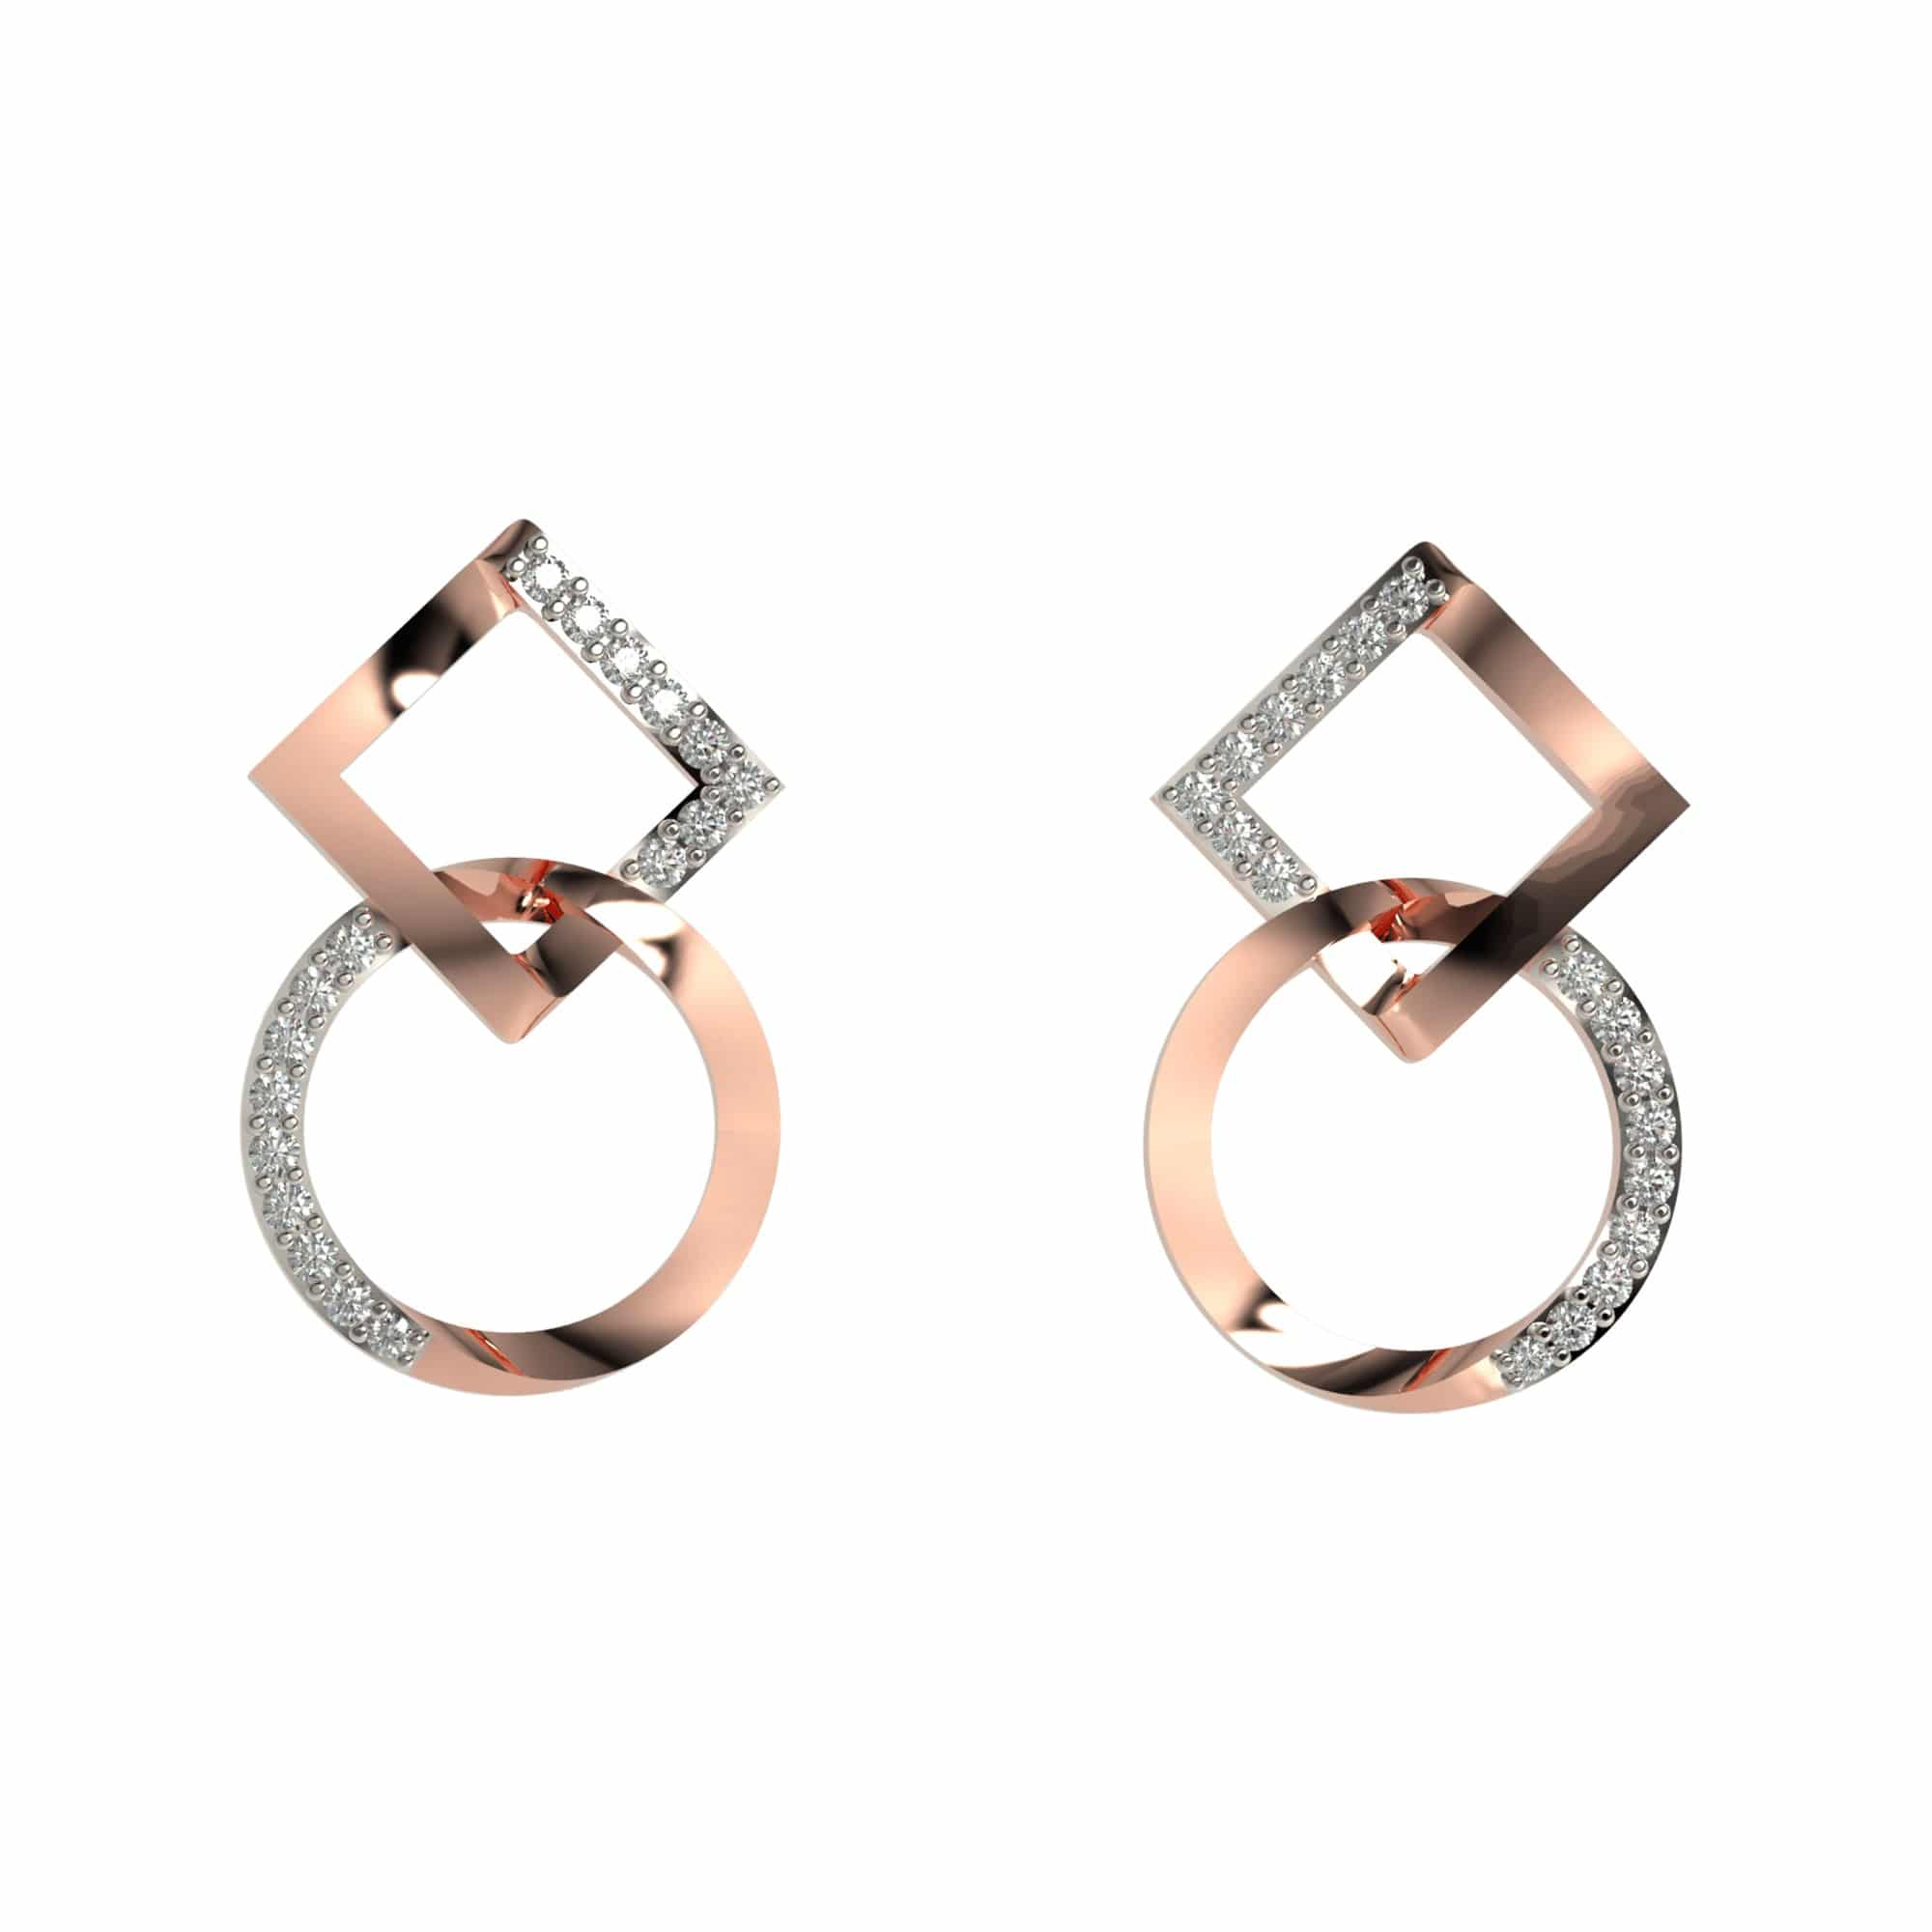 Geometric lock earrings